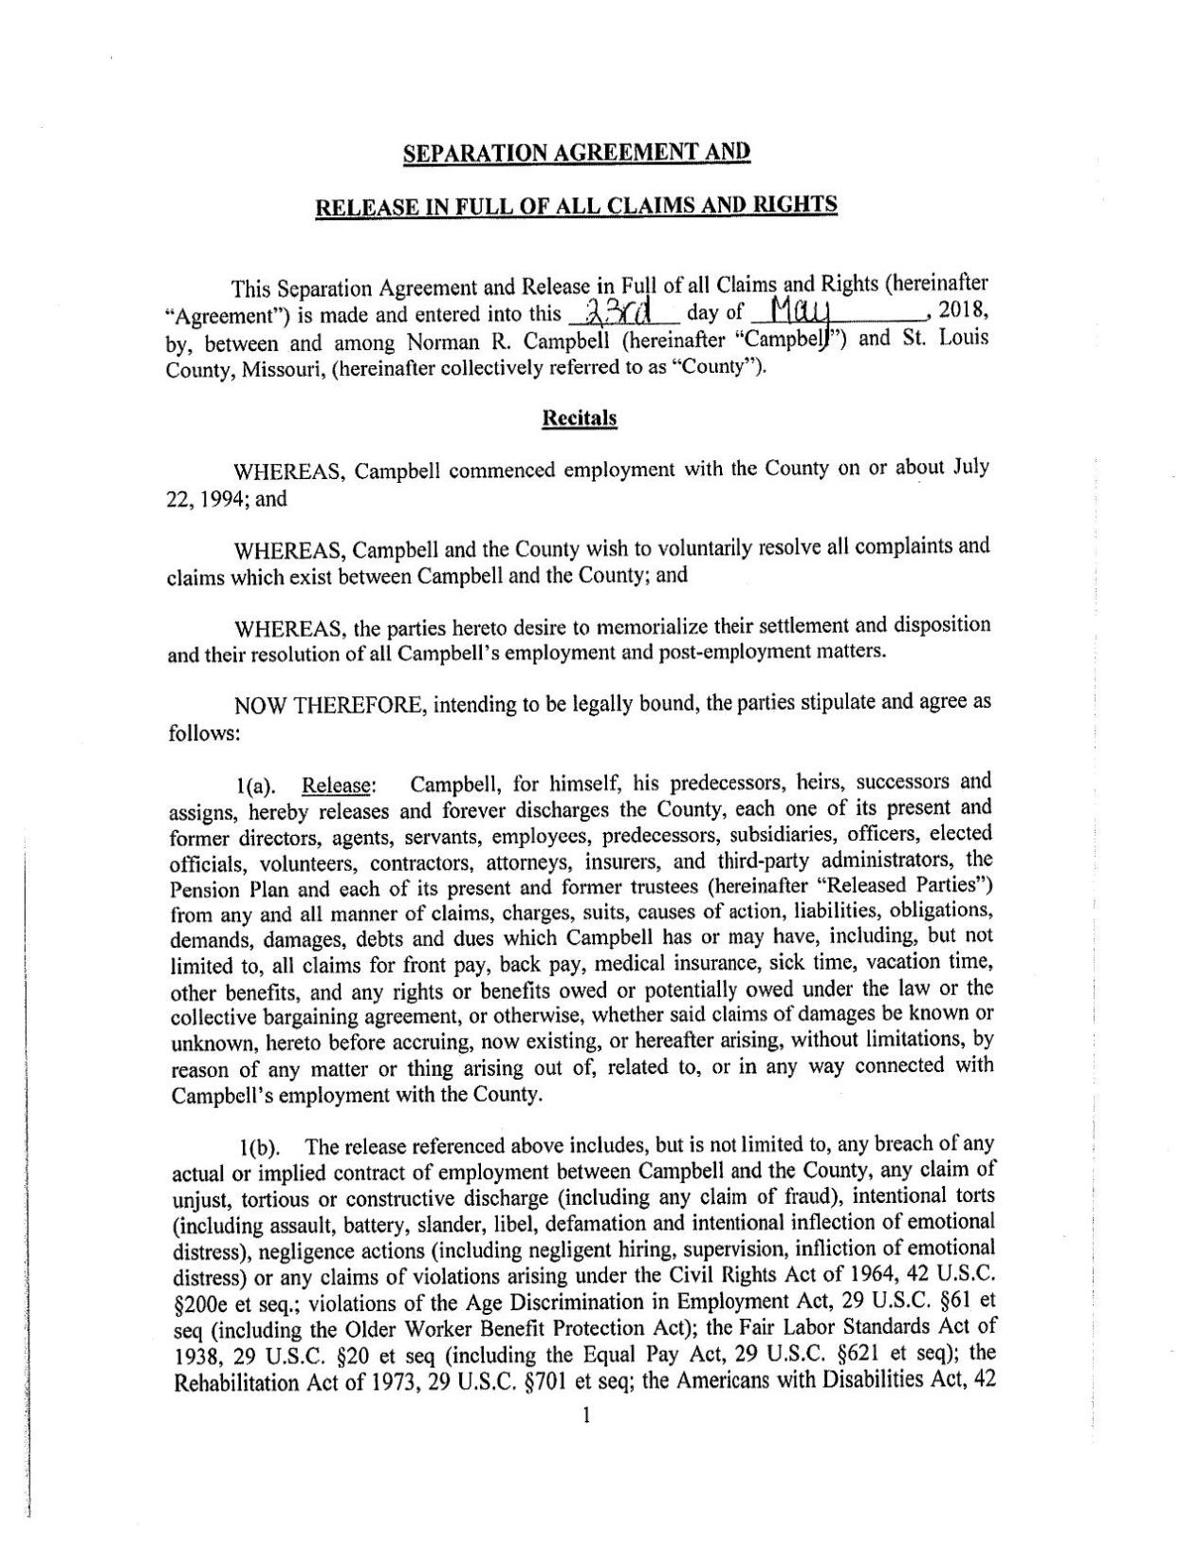 Norm campbell separation agreement multimedia stltoday download pdf norm campbell separation agreement thecheapjerseys Images